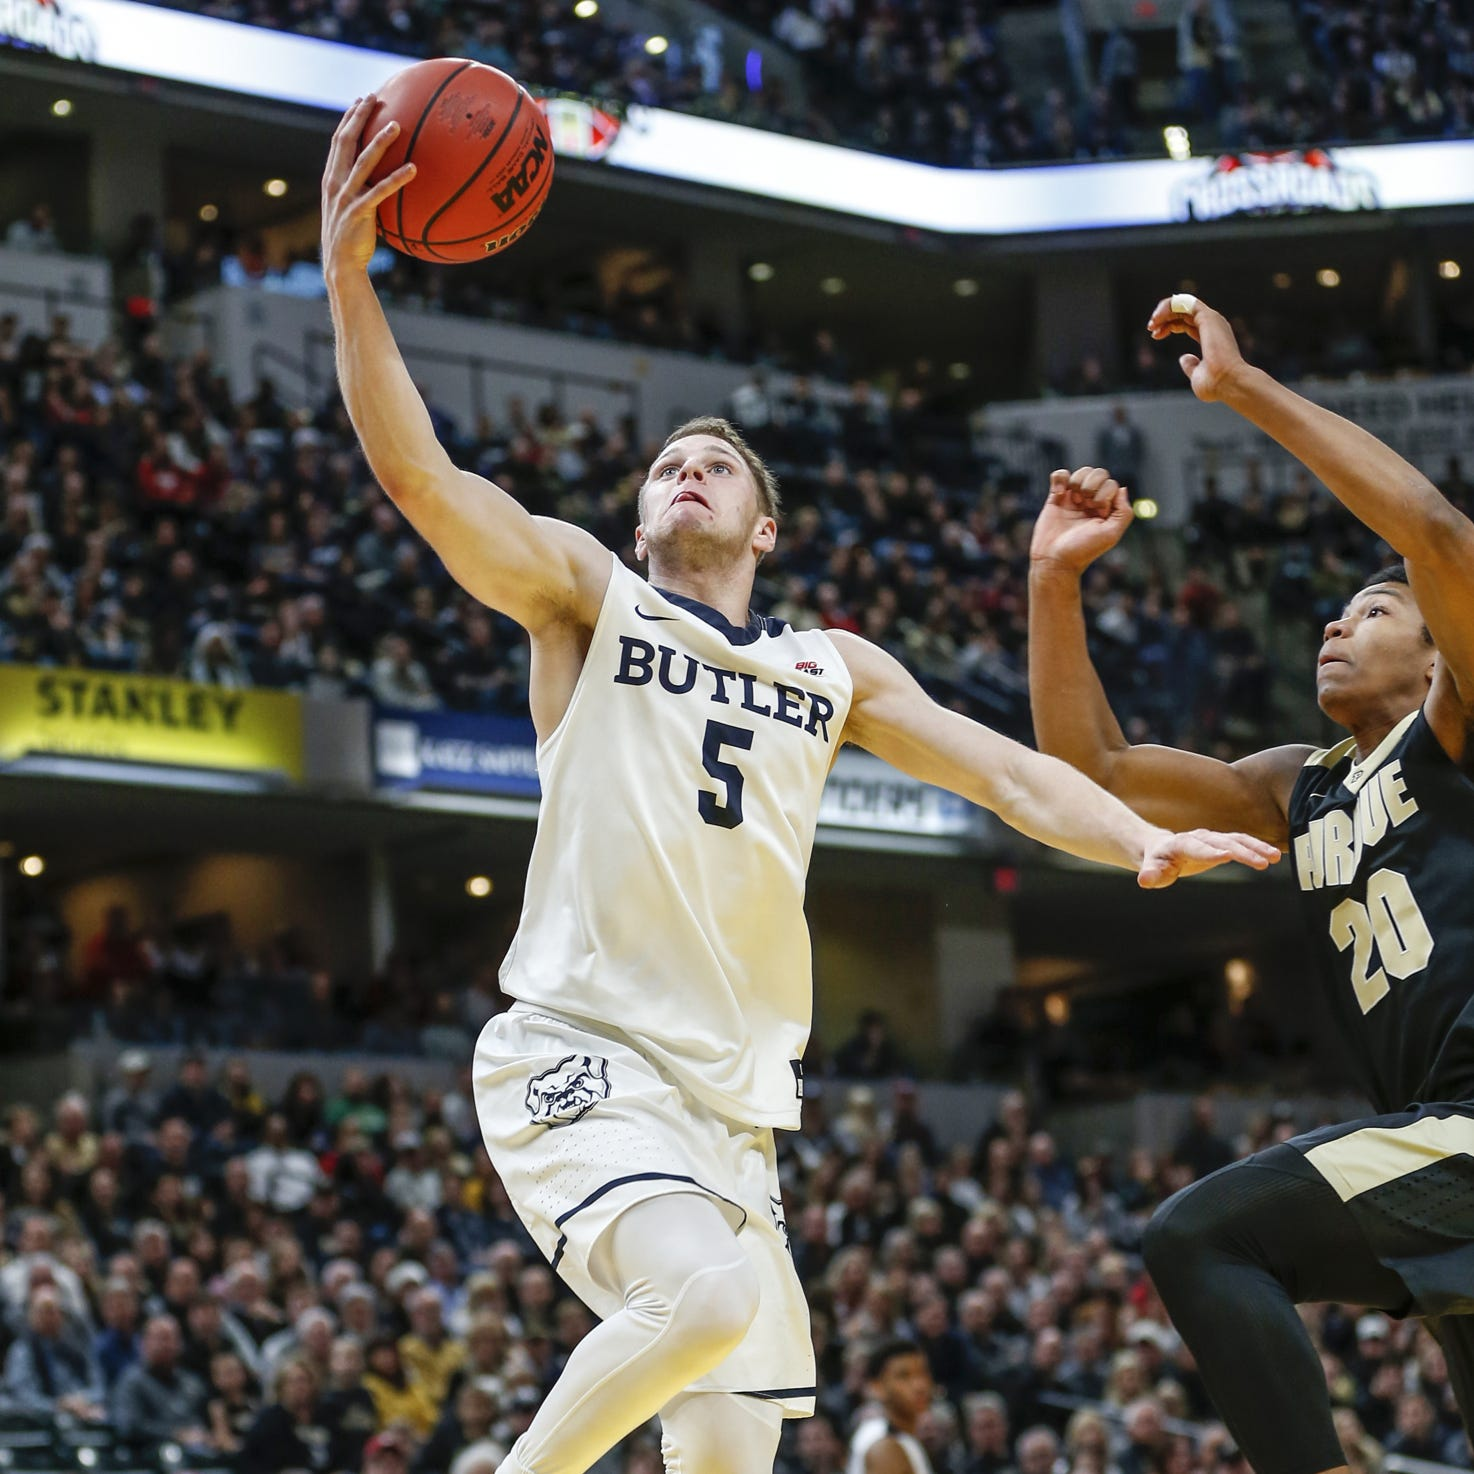 On downtown Indy stage, Butler is Indiana's college basketball headliner